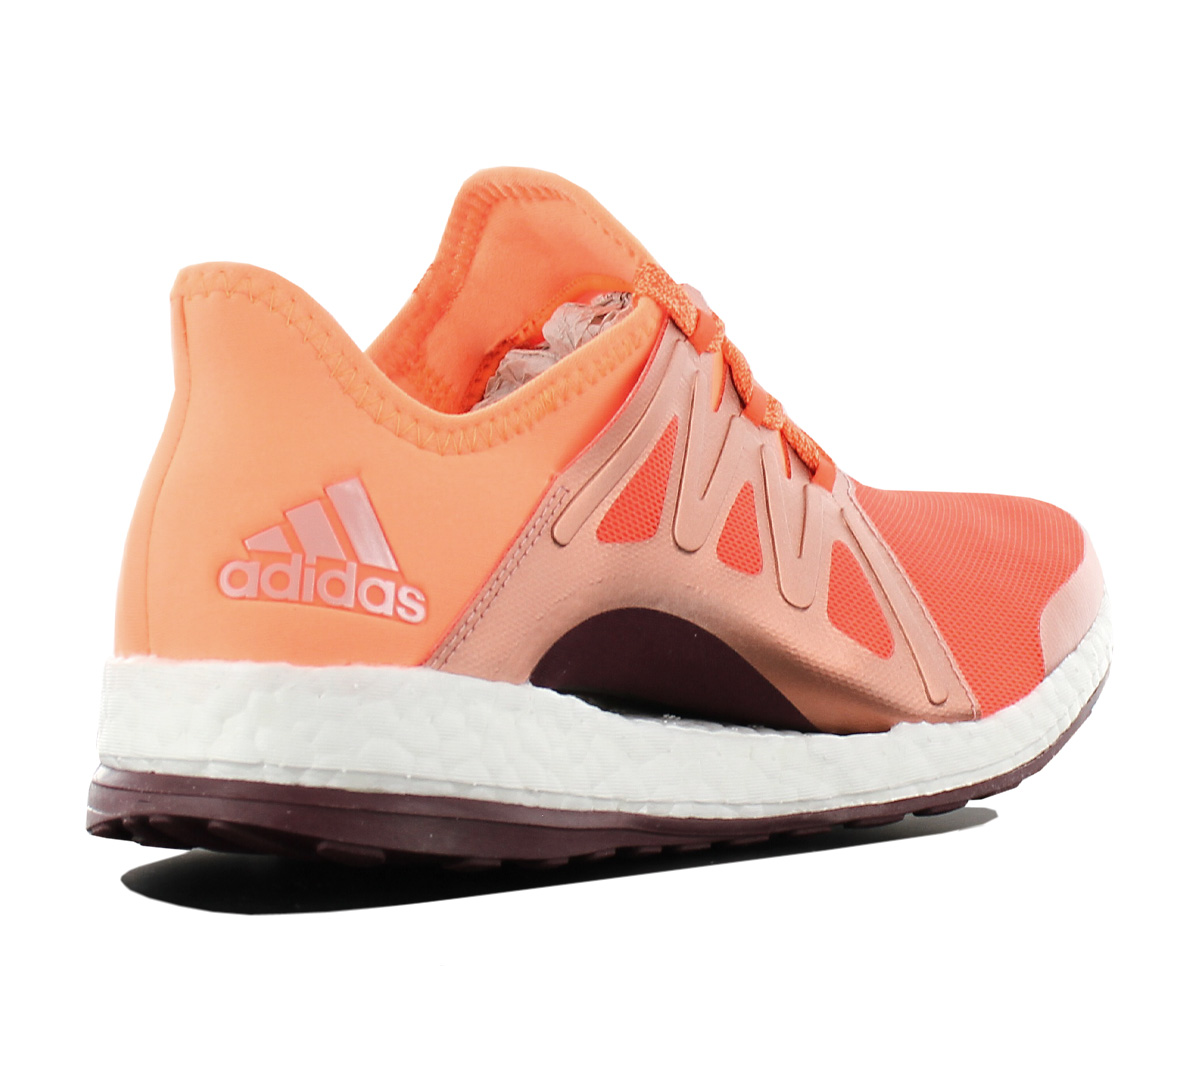 5e16d586540f0 NEW adidas Pure Boost XPose BB1731 Women  s Shoes Trainers Sneakers ...